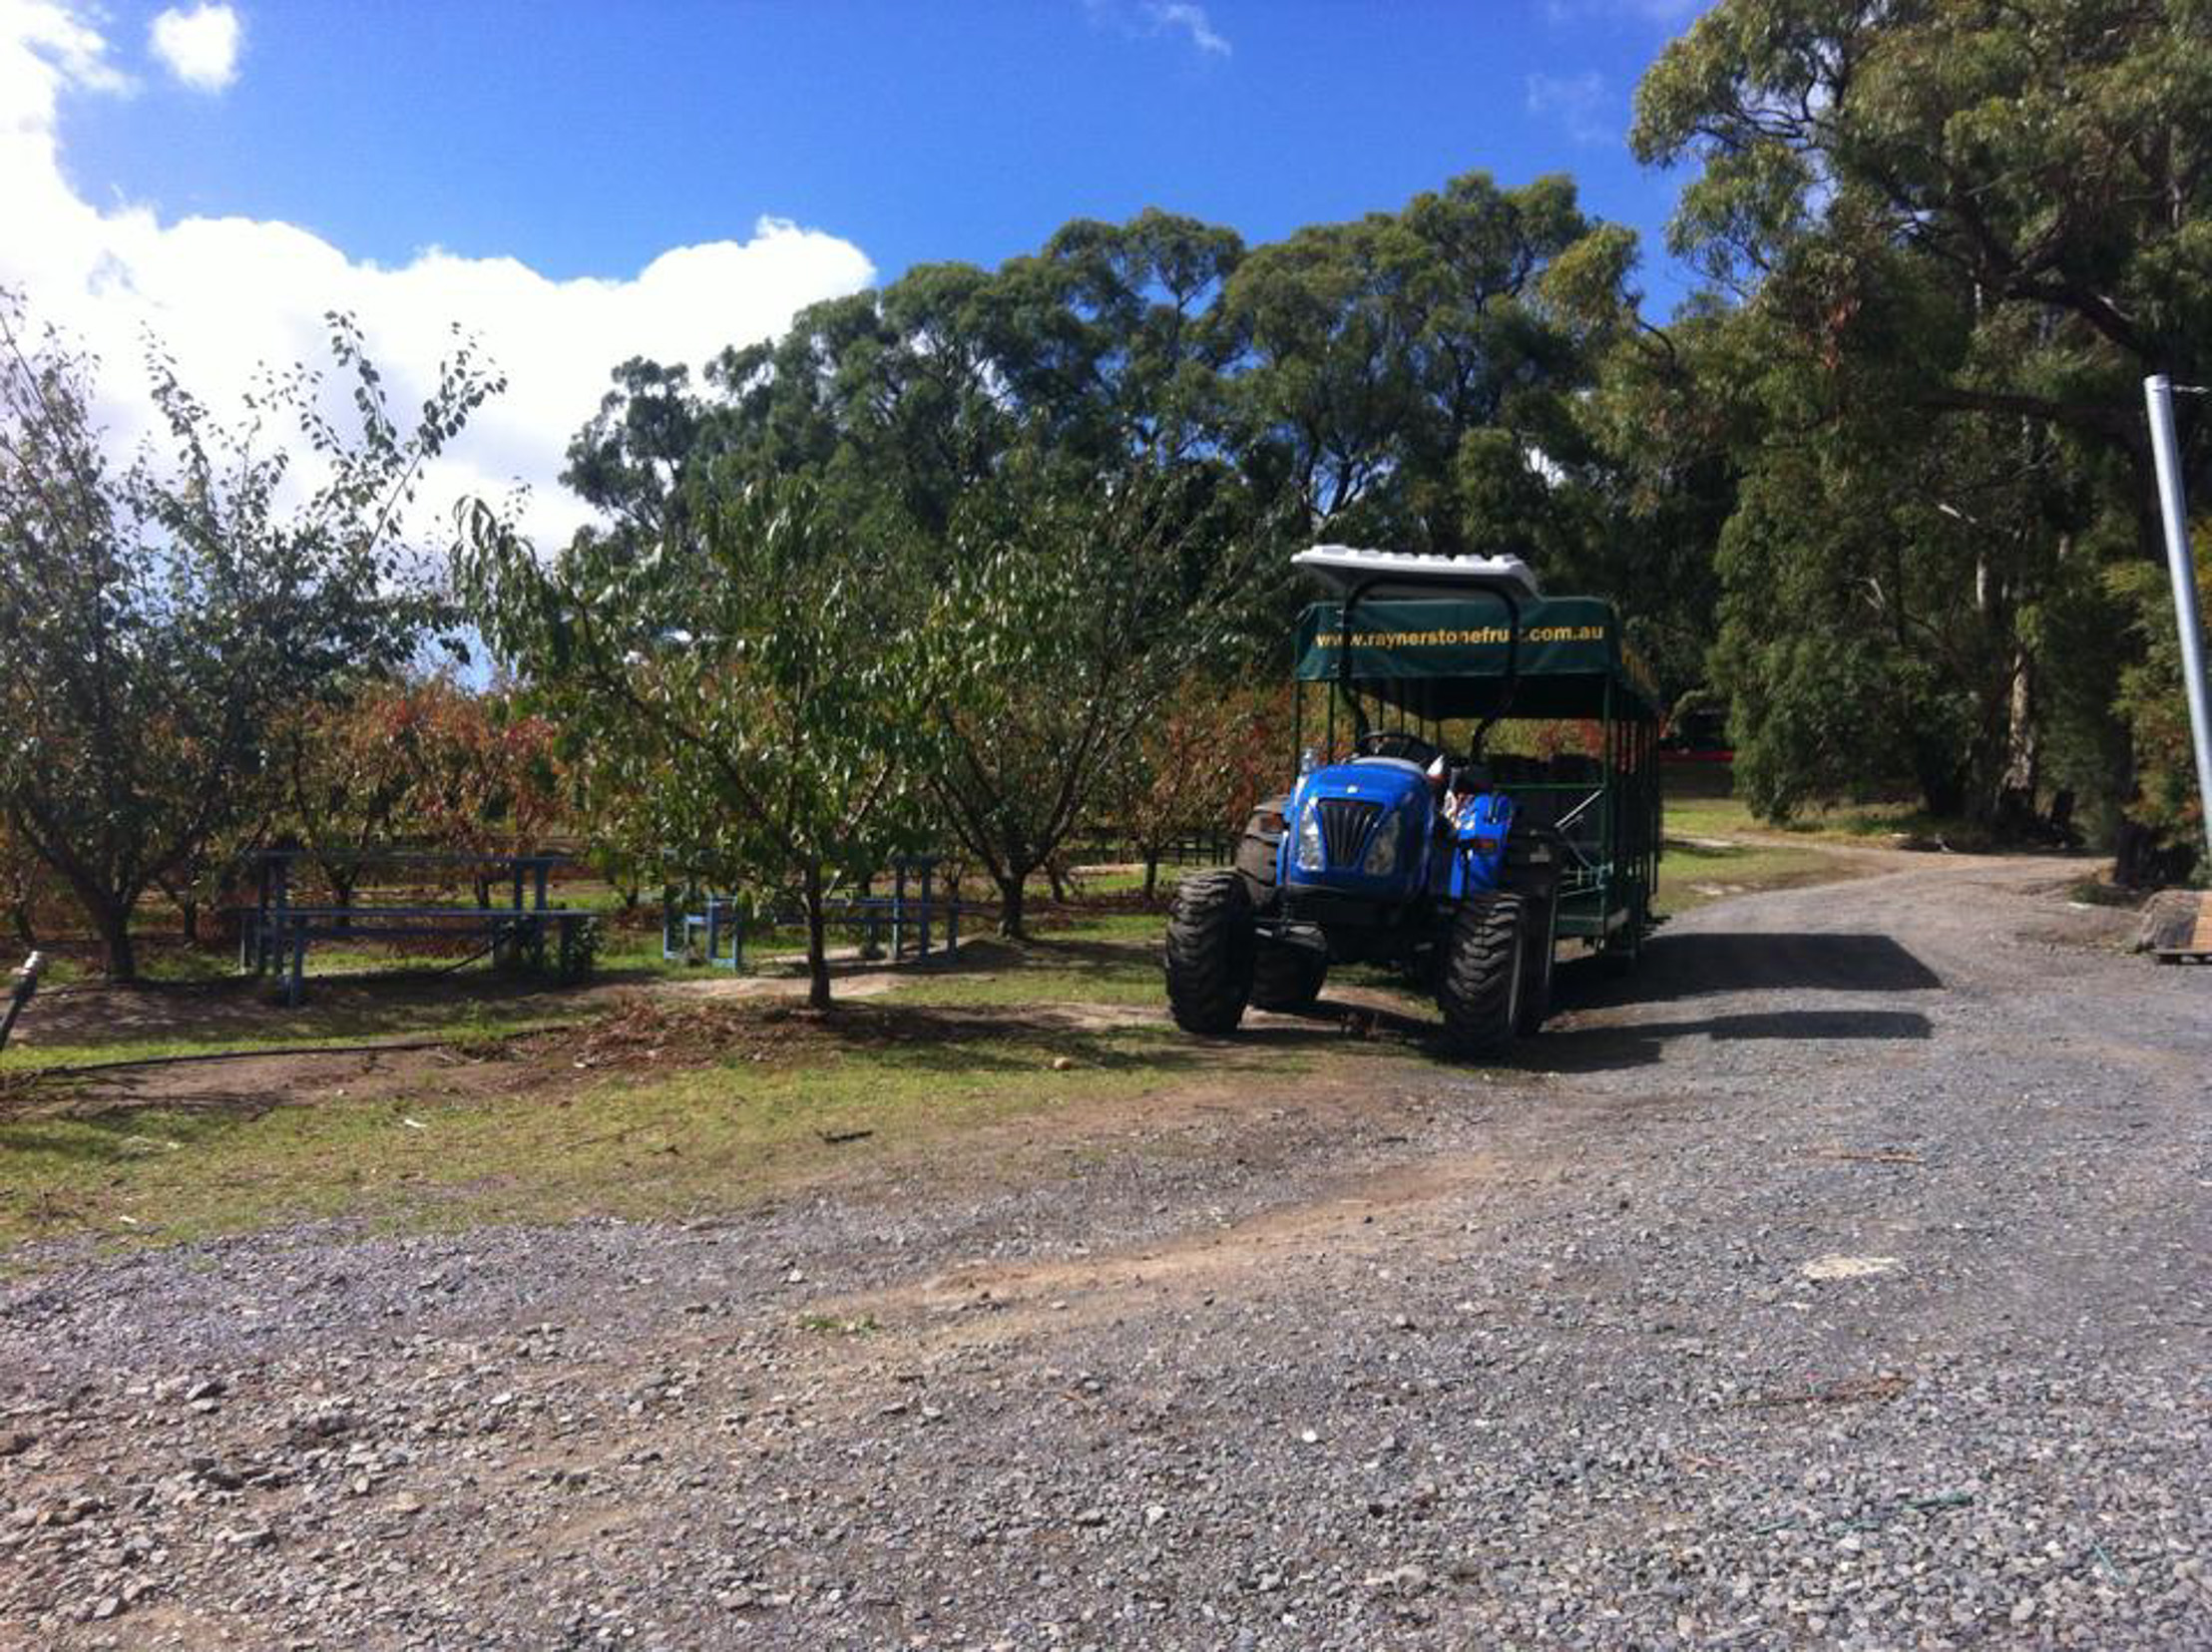 rayners orchard ferme yarra valley